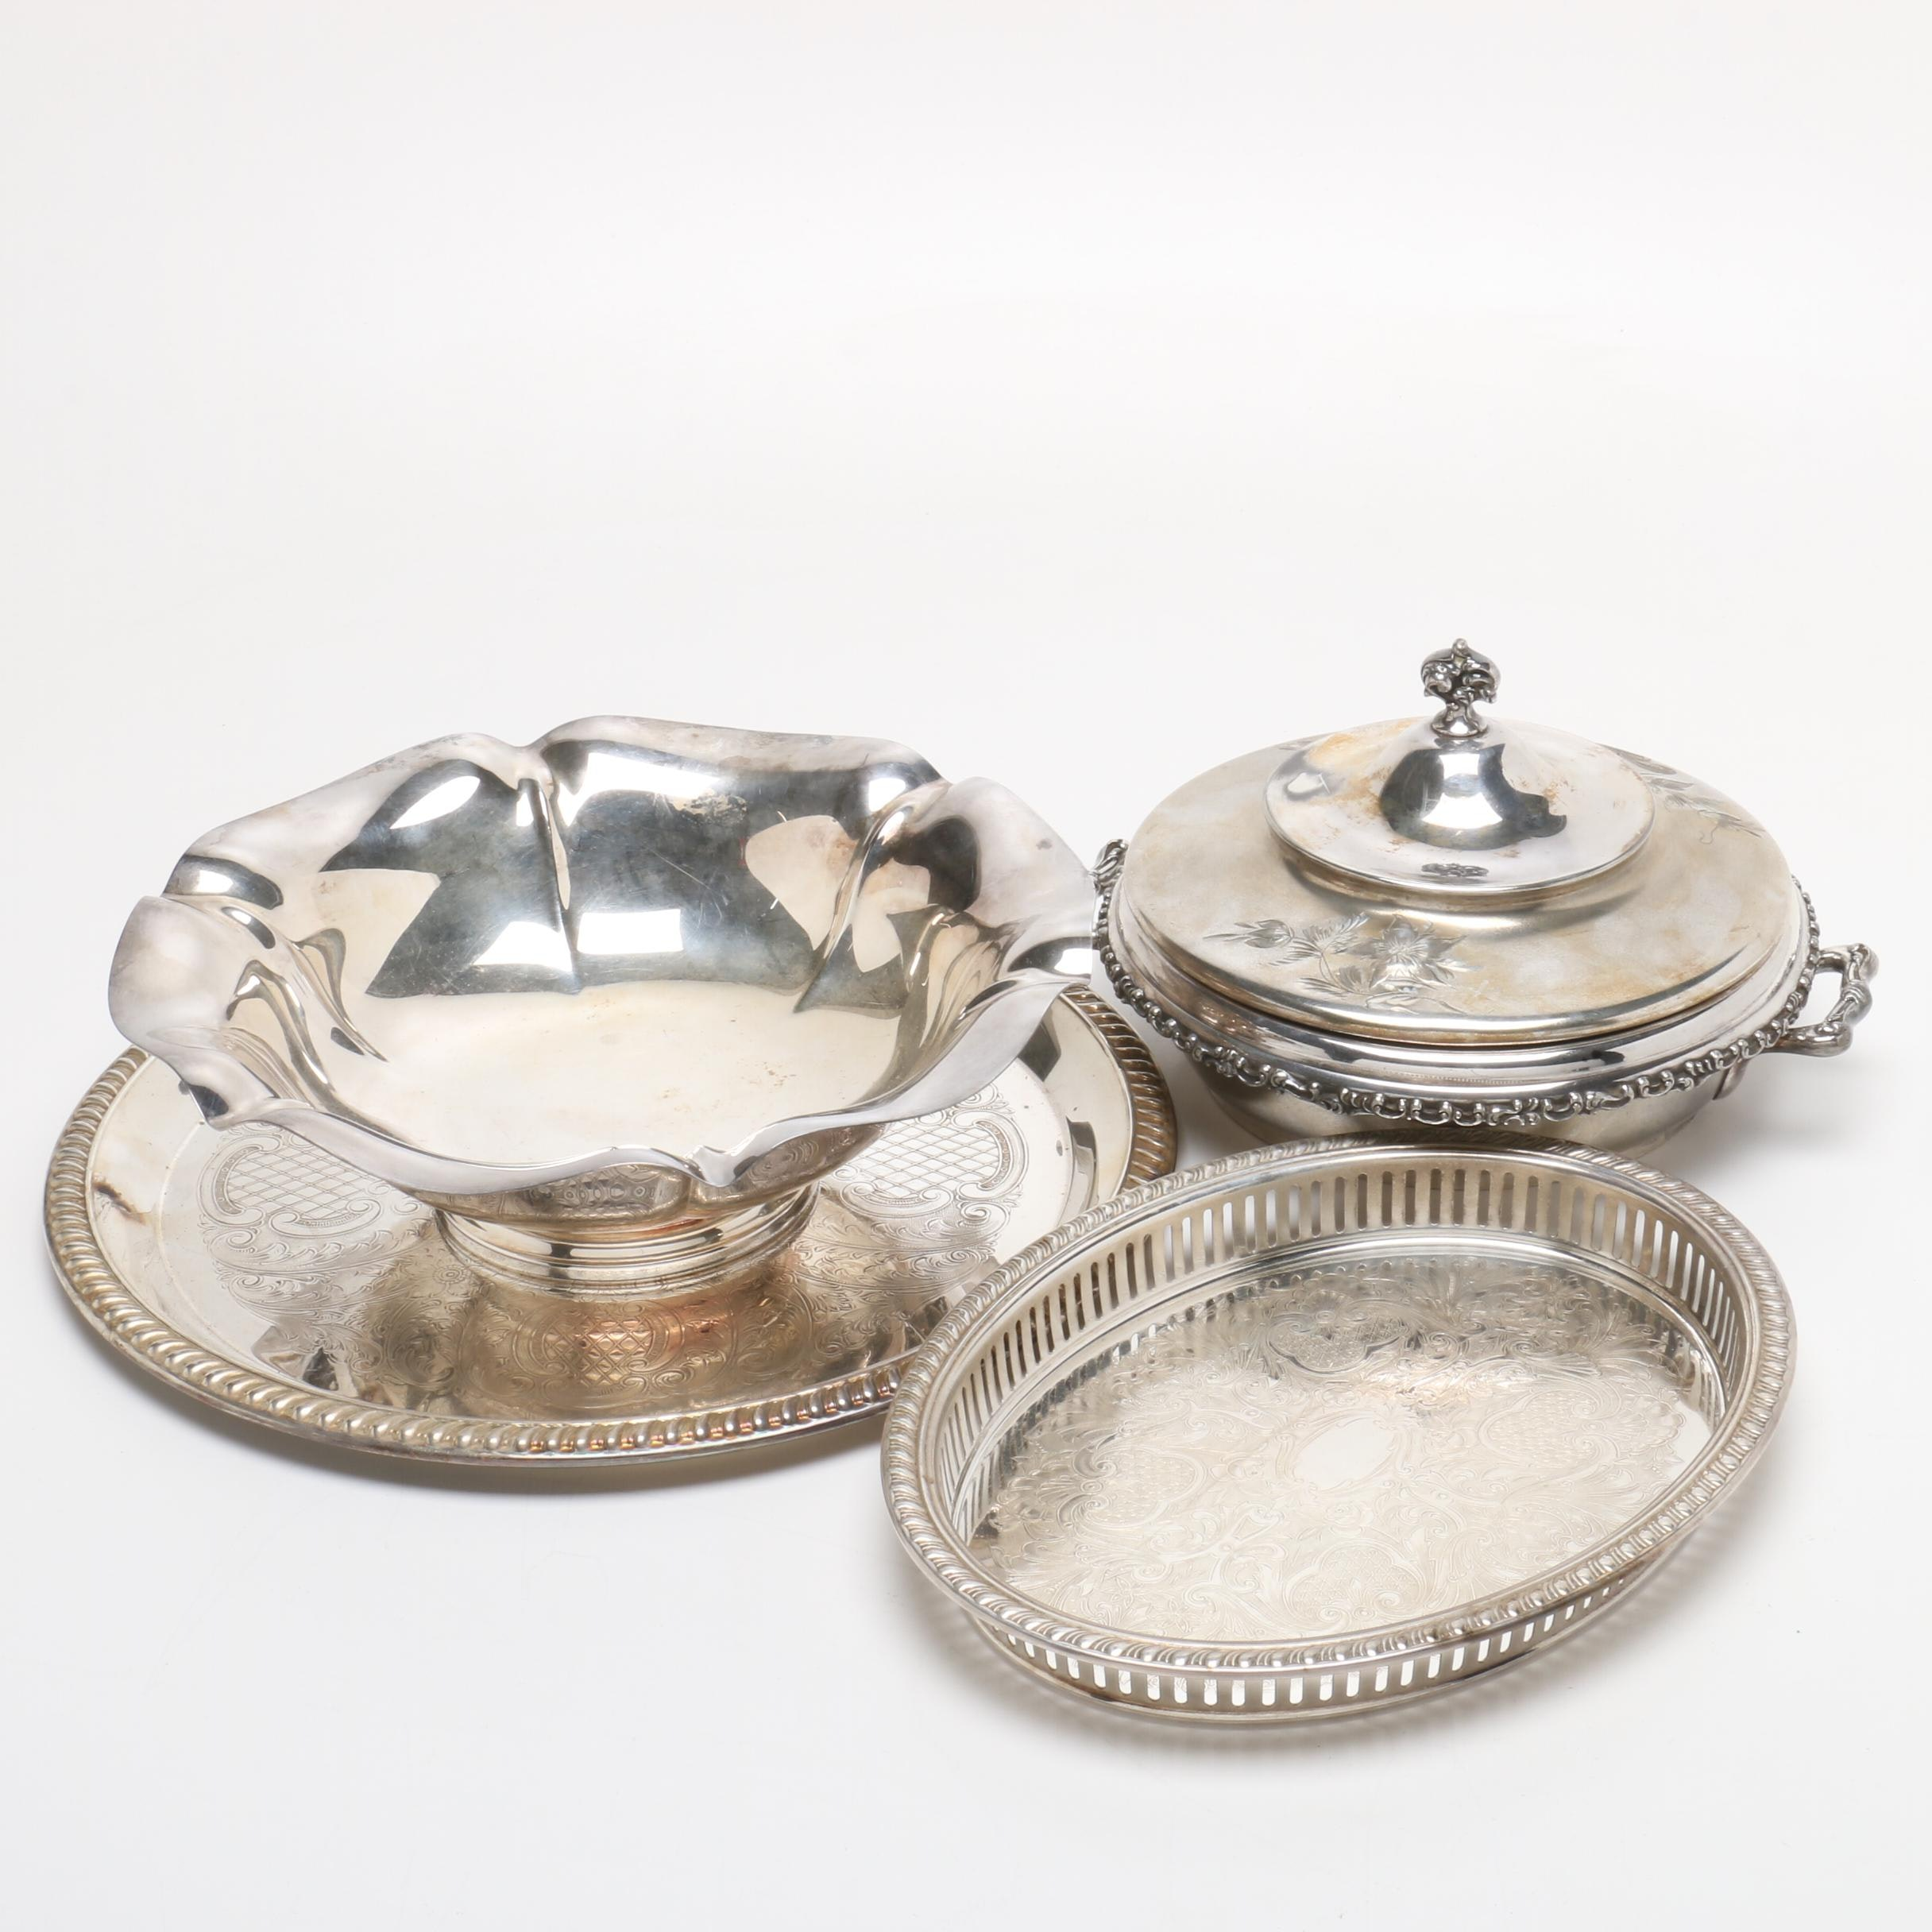 Silver Plate Serveware Featuring Poole and Reed & Barton